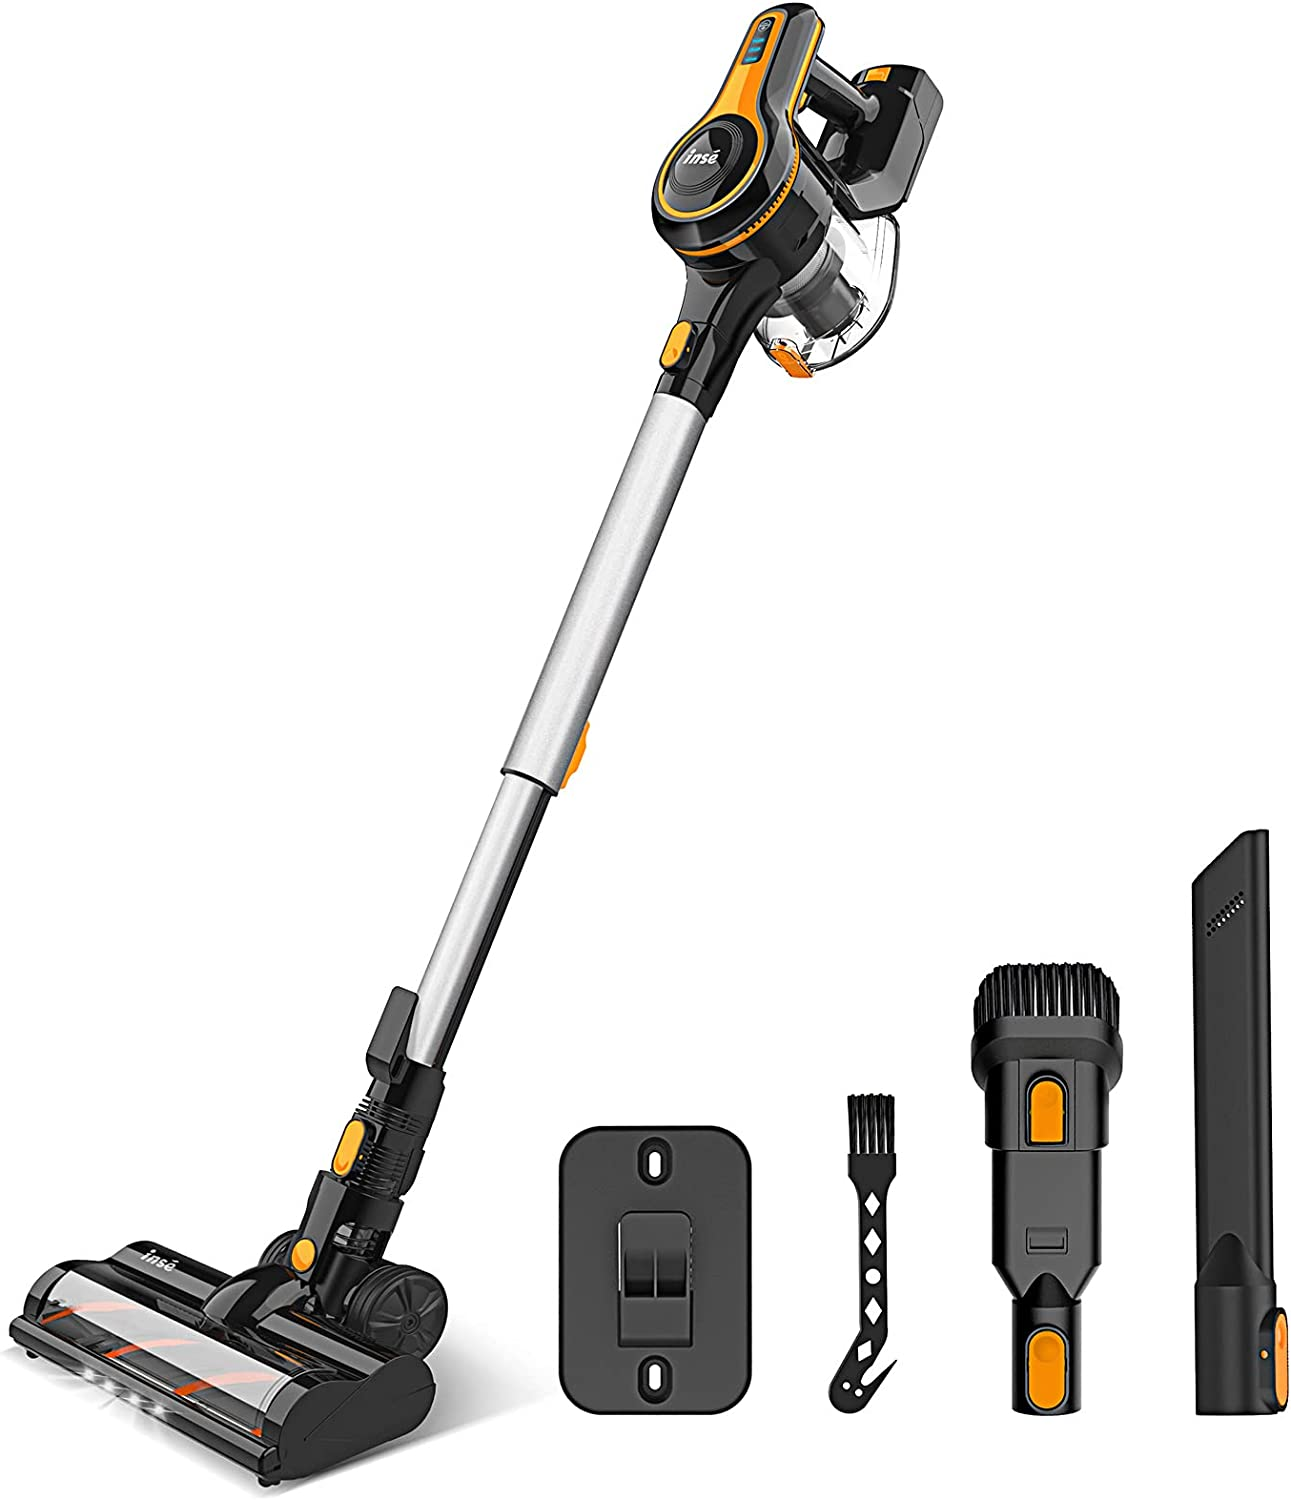 Cordless Vacuum Cleaner, 23Kpa Strong Suction Stick Vacuum with 45min Max Long Runtime Detachable Battery, Extra Large Dustbin, Powerful Brushless Motor, Ultra Quiet Lightweight - INSE S600